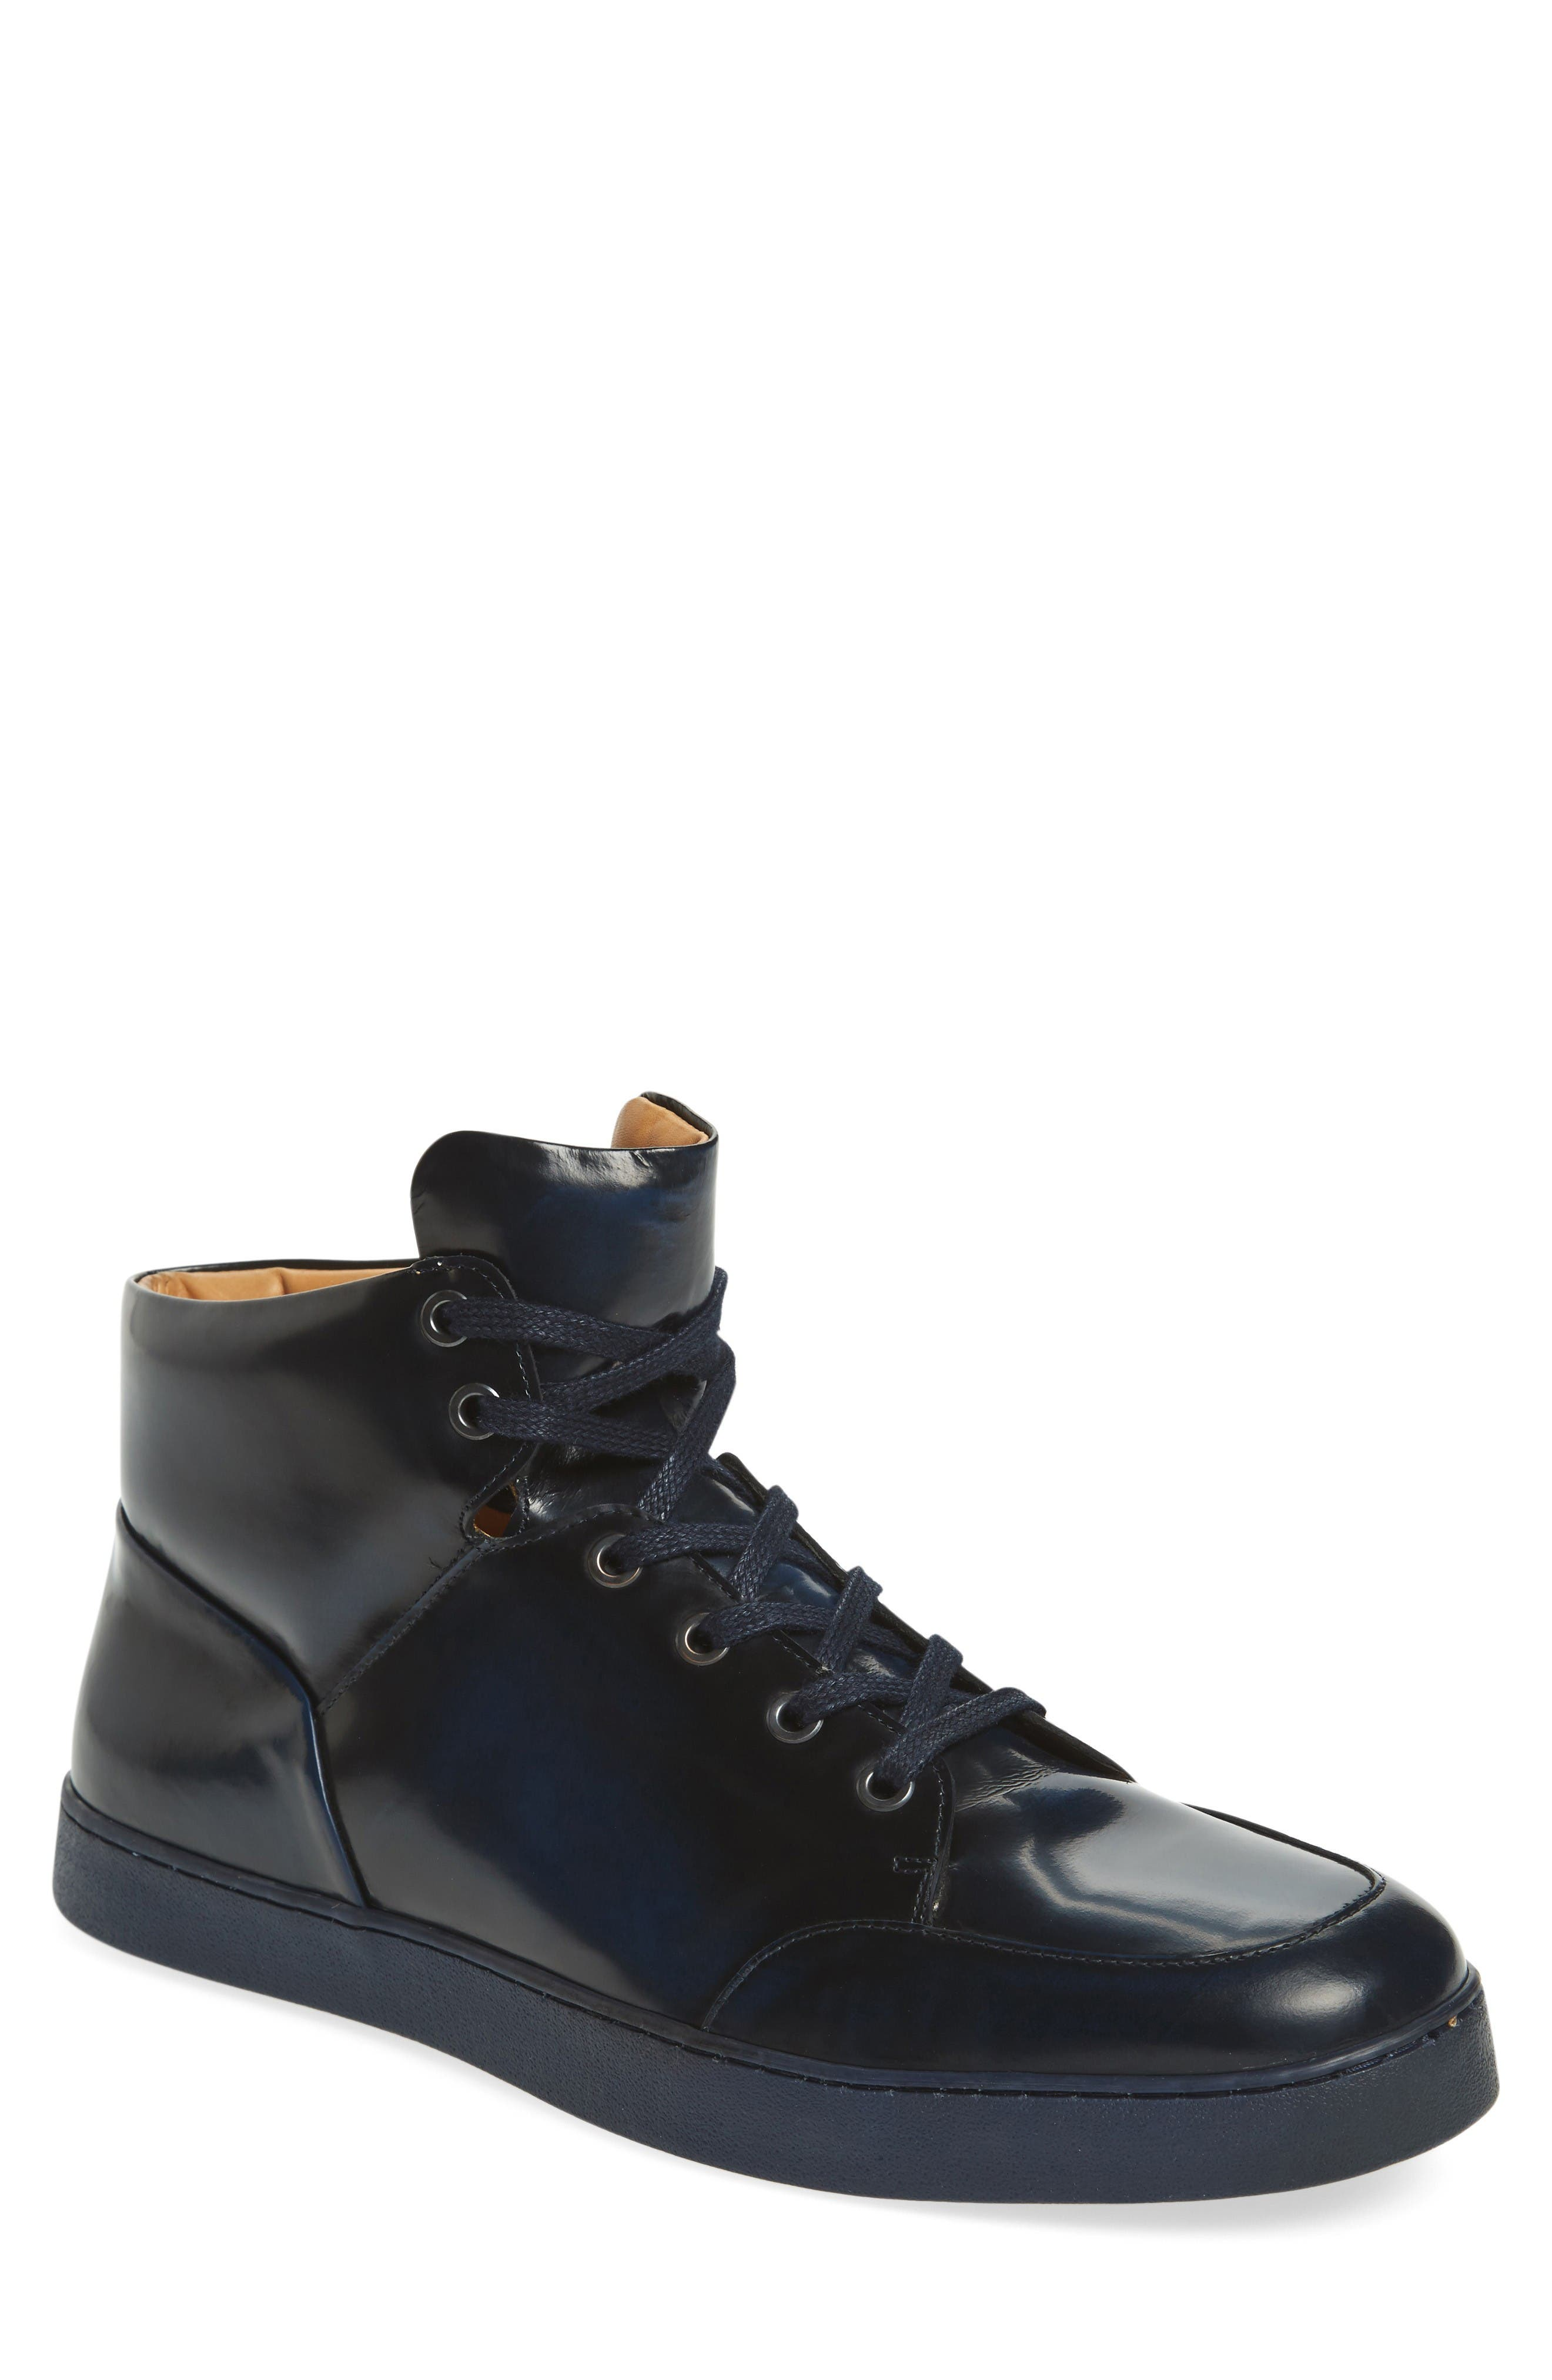 Gidean High Top Sneaker,                         Main,                         color, Navy Leather